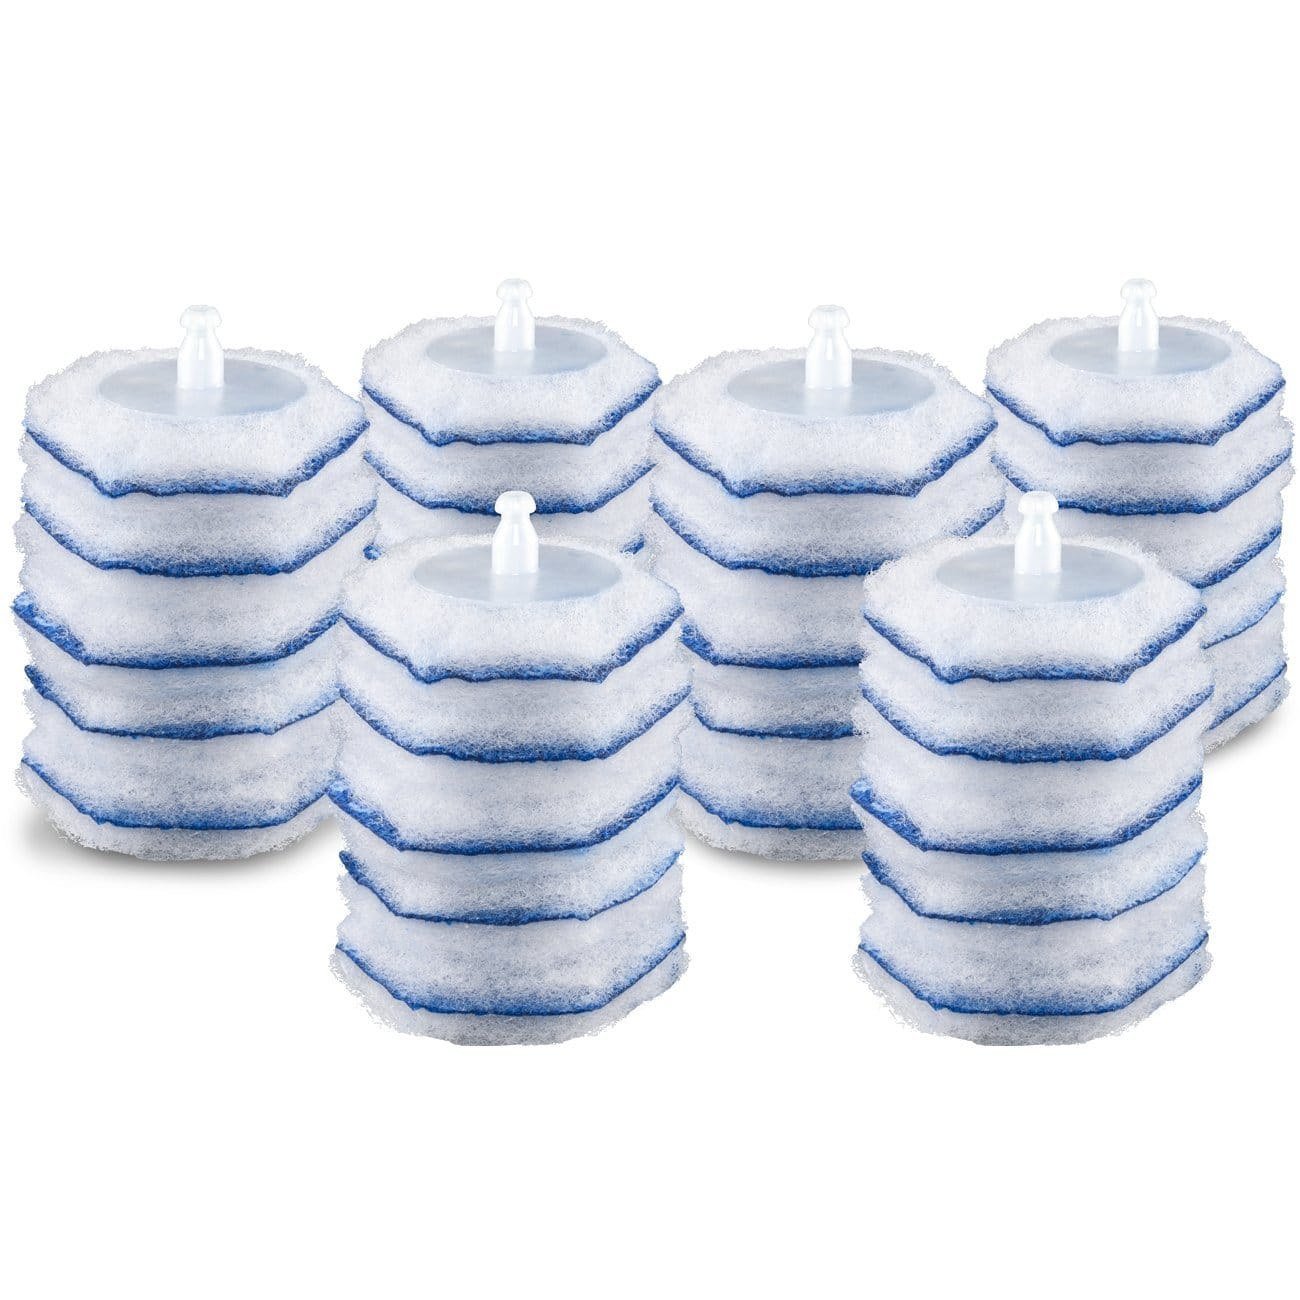 Clorox 30 ct. Toilet Wand Refills as low as $7.44 AC and 15% Subscribe & Save Discount @ Amazon